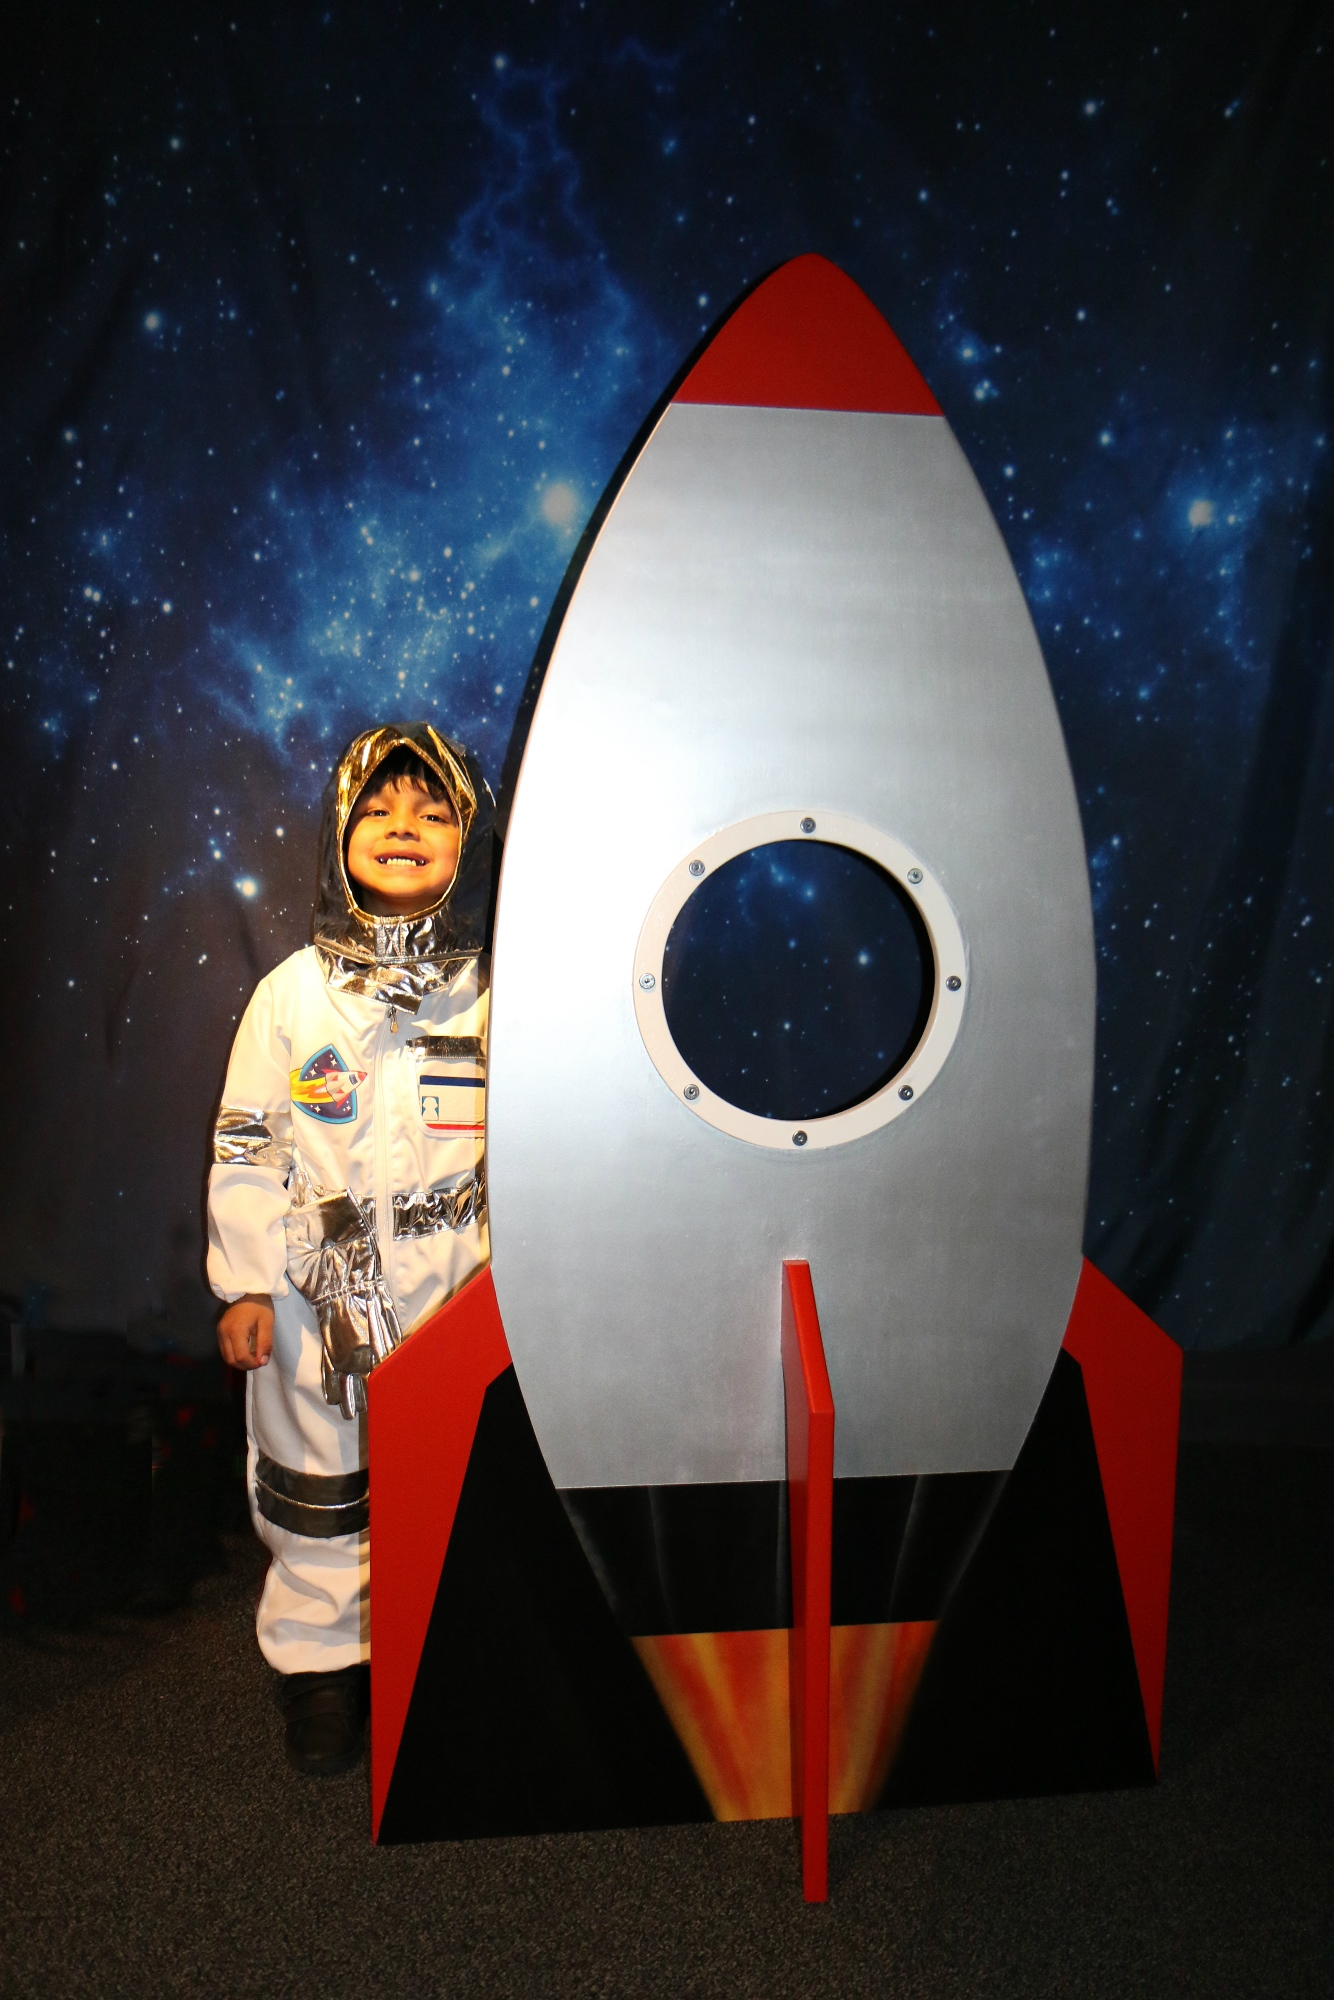 Toddler spaceman with rocket ship for Teeny Tiny Toddler Fest 2019.